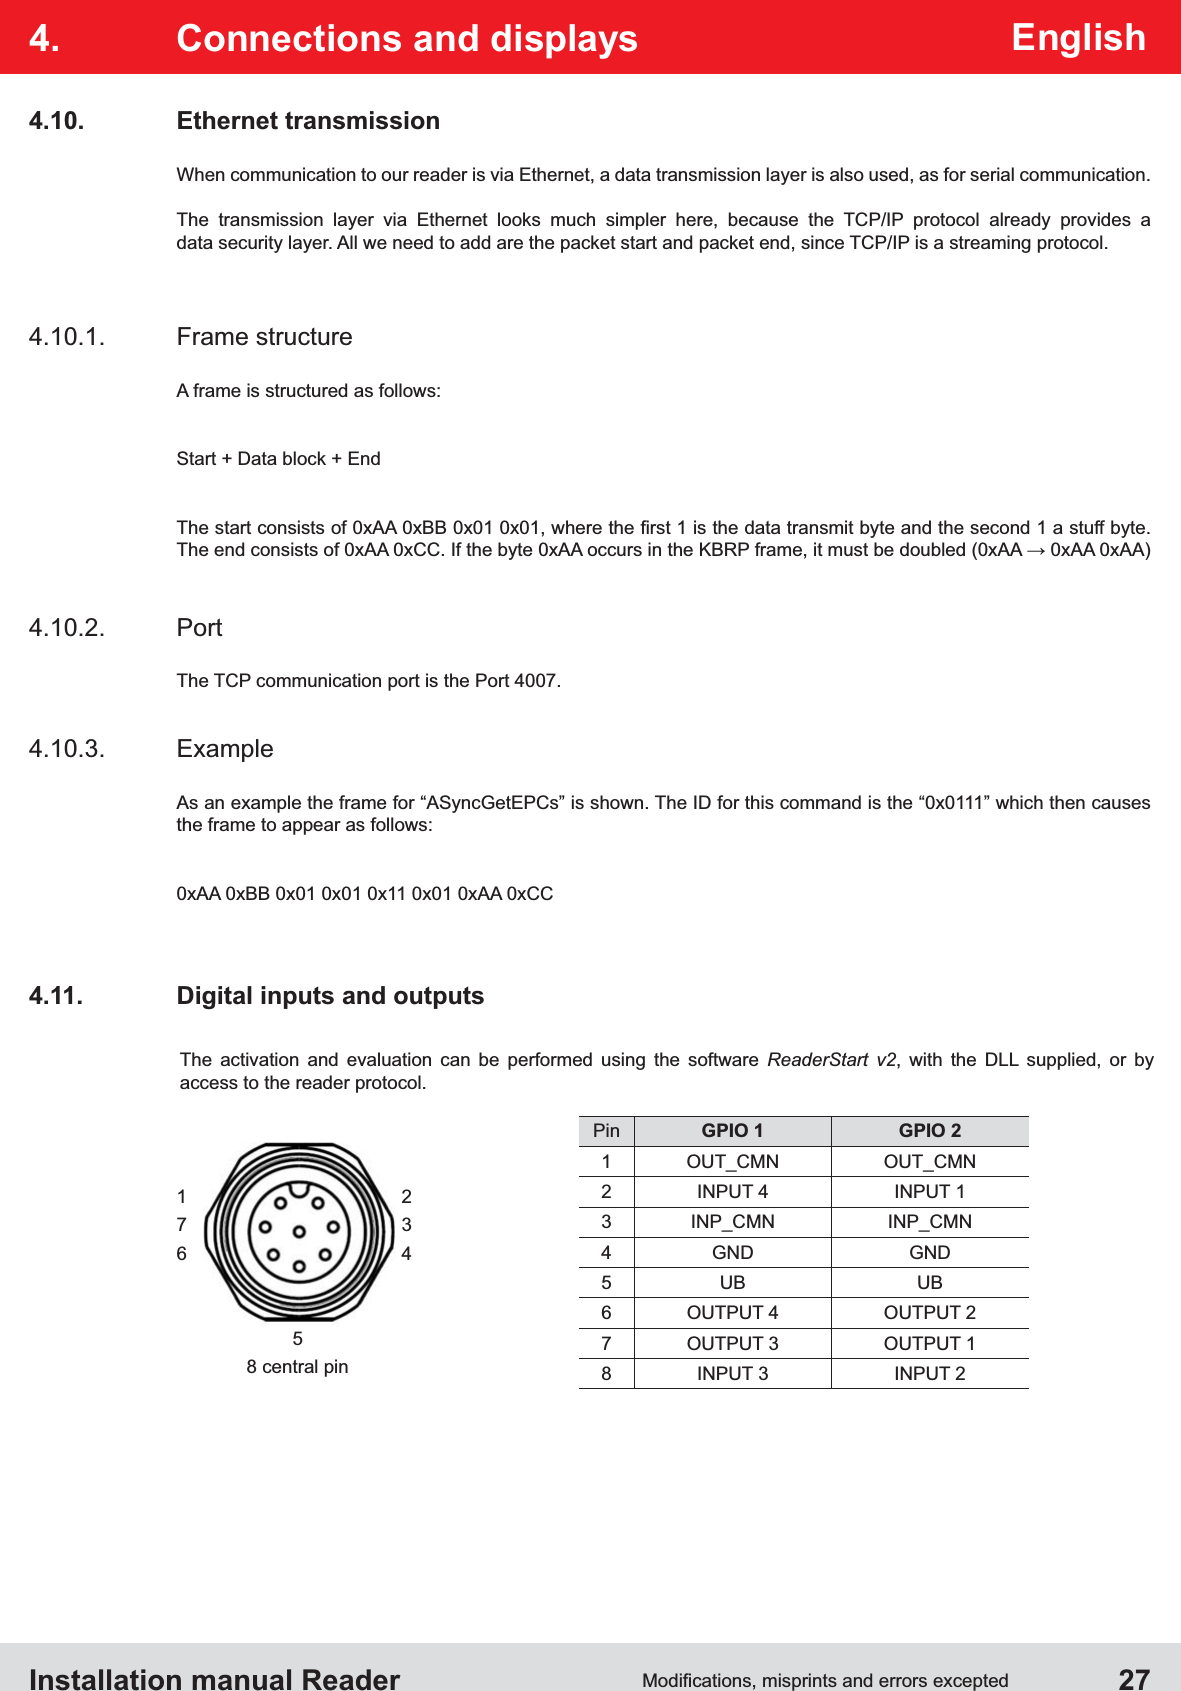 """Installation manual Reader  27English4.  Connections and displays4.11.  Digital inputs and outputs4.10.1. Frame structureA frame is structured as follows:Start + Data block + End 4.10.2. PortThe TCP communication port is the Port 4007.4.10.3. ExampleAs an example the frame for """"ASyncGetEPCs"""" is shown. The ID for this command is the """"0x0111"""" which then causes the frame to appear as follows:0xAA 0xBB 0x01 0x01 0x11 0x01 0xAA 0xCC4.10. Ethernet transmissionWhen communication to our reader is via Ethernet, a data transmission layer is also used, as for serial communication. The transmission layer via Ethernet looks much simpler here, because the TCP/IP protocol already provides a  data security layer. All we need to add are the packet start and packet end, since TCP/IP is a streaming protocol.The activation and evaluation can be performed using the software ReaderStart v2, with the DLL supplied, or by  access to the reader protocol.Pin GPIO 1 GPIO 21 OUT_CMN OUT_CMN2 INPUT 4 INPUT 13 INP_CMN INP_CMN4 GND GND5UB UB6 OUTPUT 4 OUTPUT 27 OUTPUT 3 OUTPUT 18 INPUT 3 INPUT 21   27   36   458 central pin"""